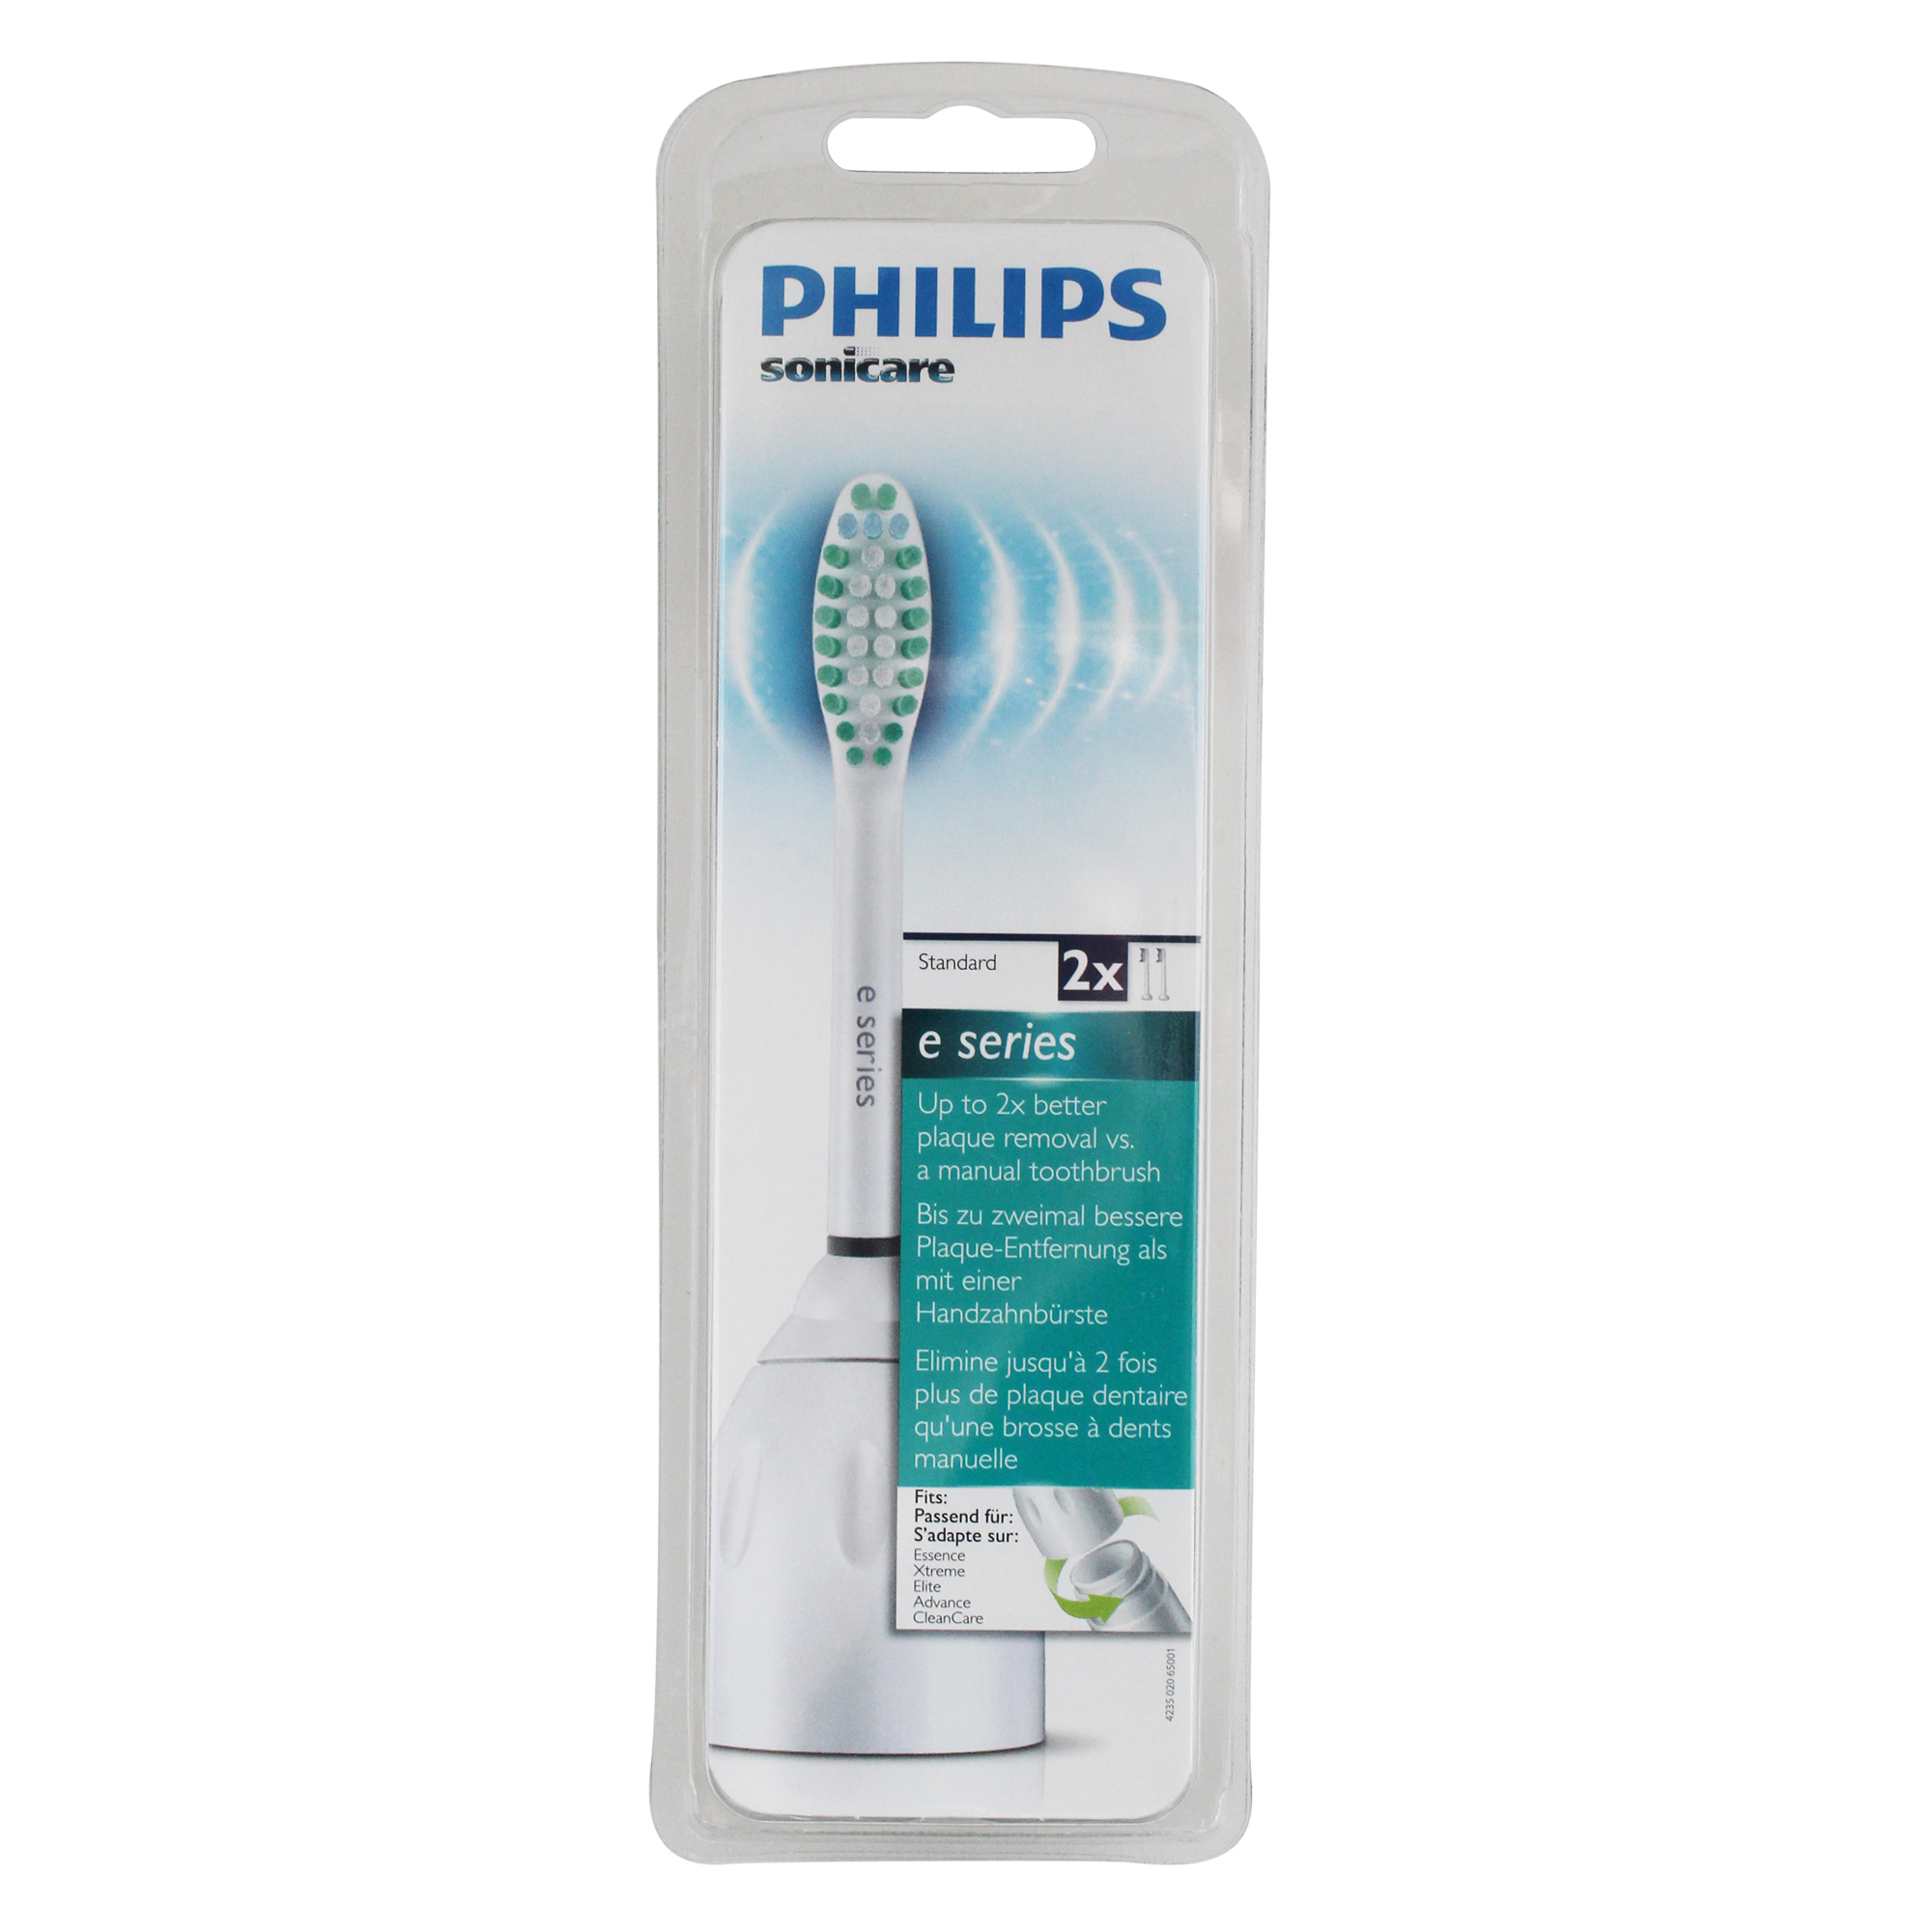 Philips Sonicare tandenborstels (E-series Standard A2) HX7022